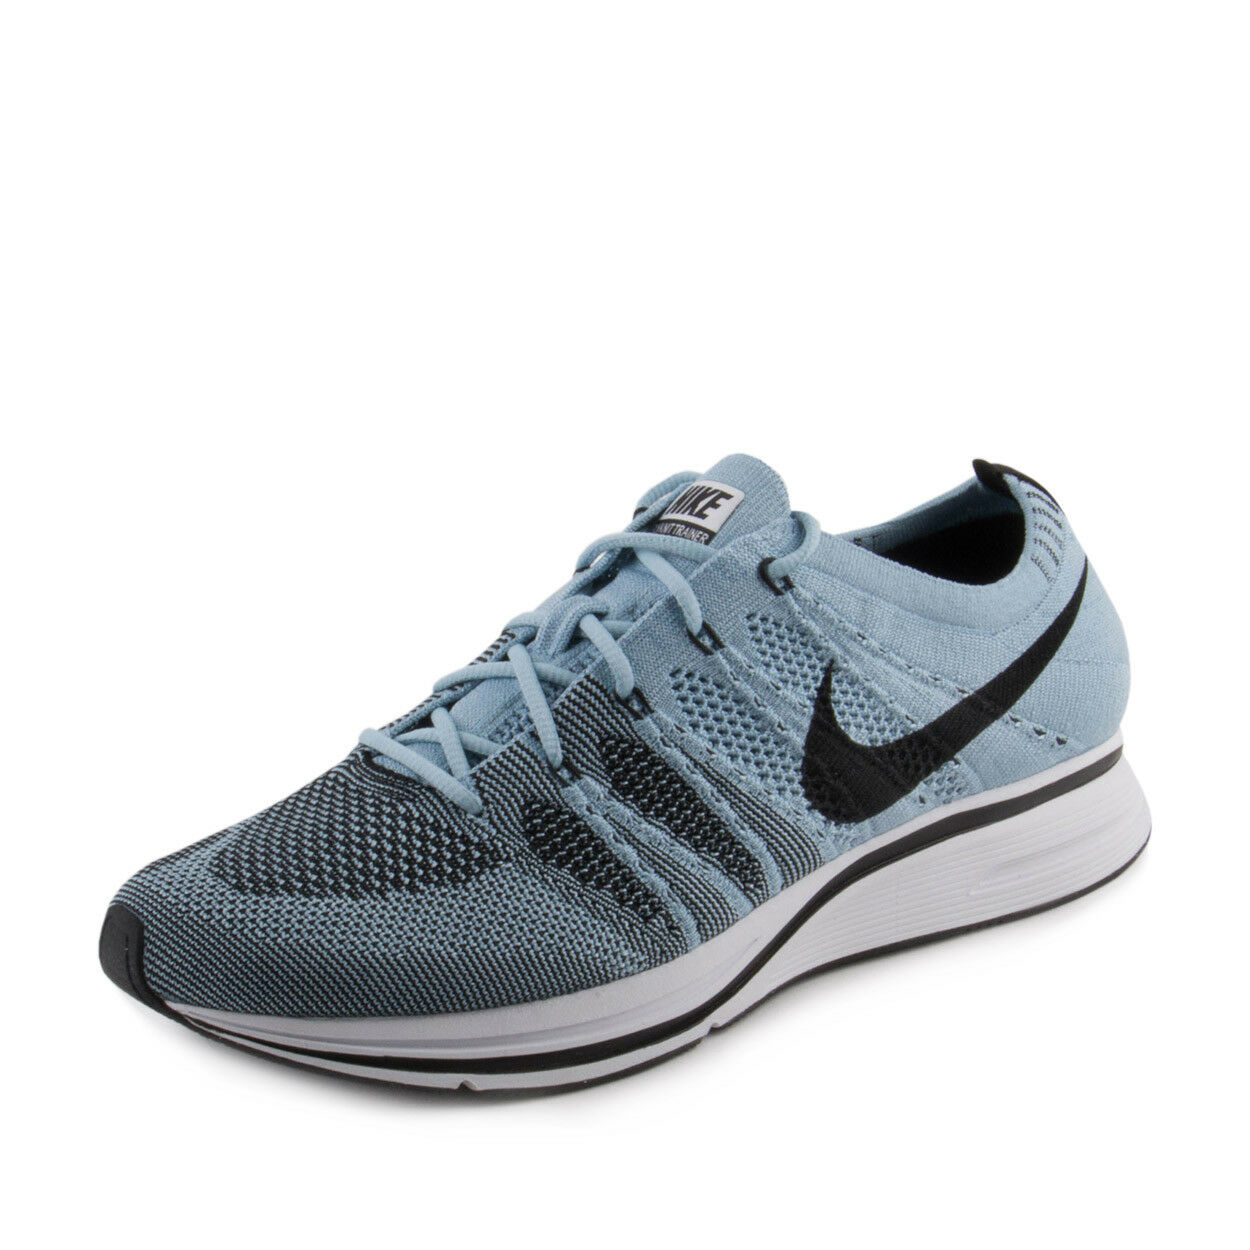 Nike Mens Flyknit Trainer Cirrus bluee Black AH8396-400